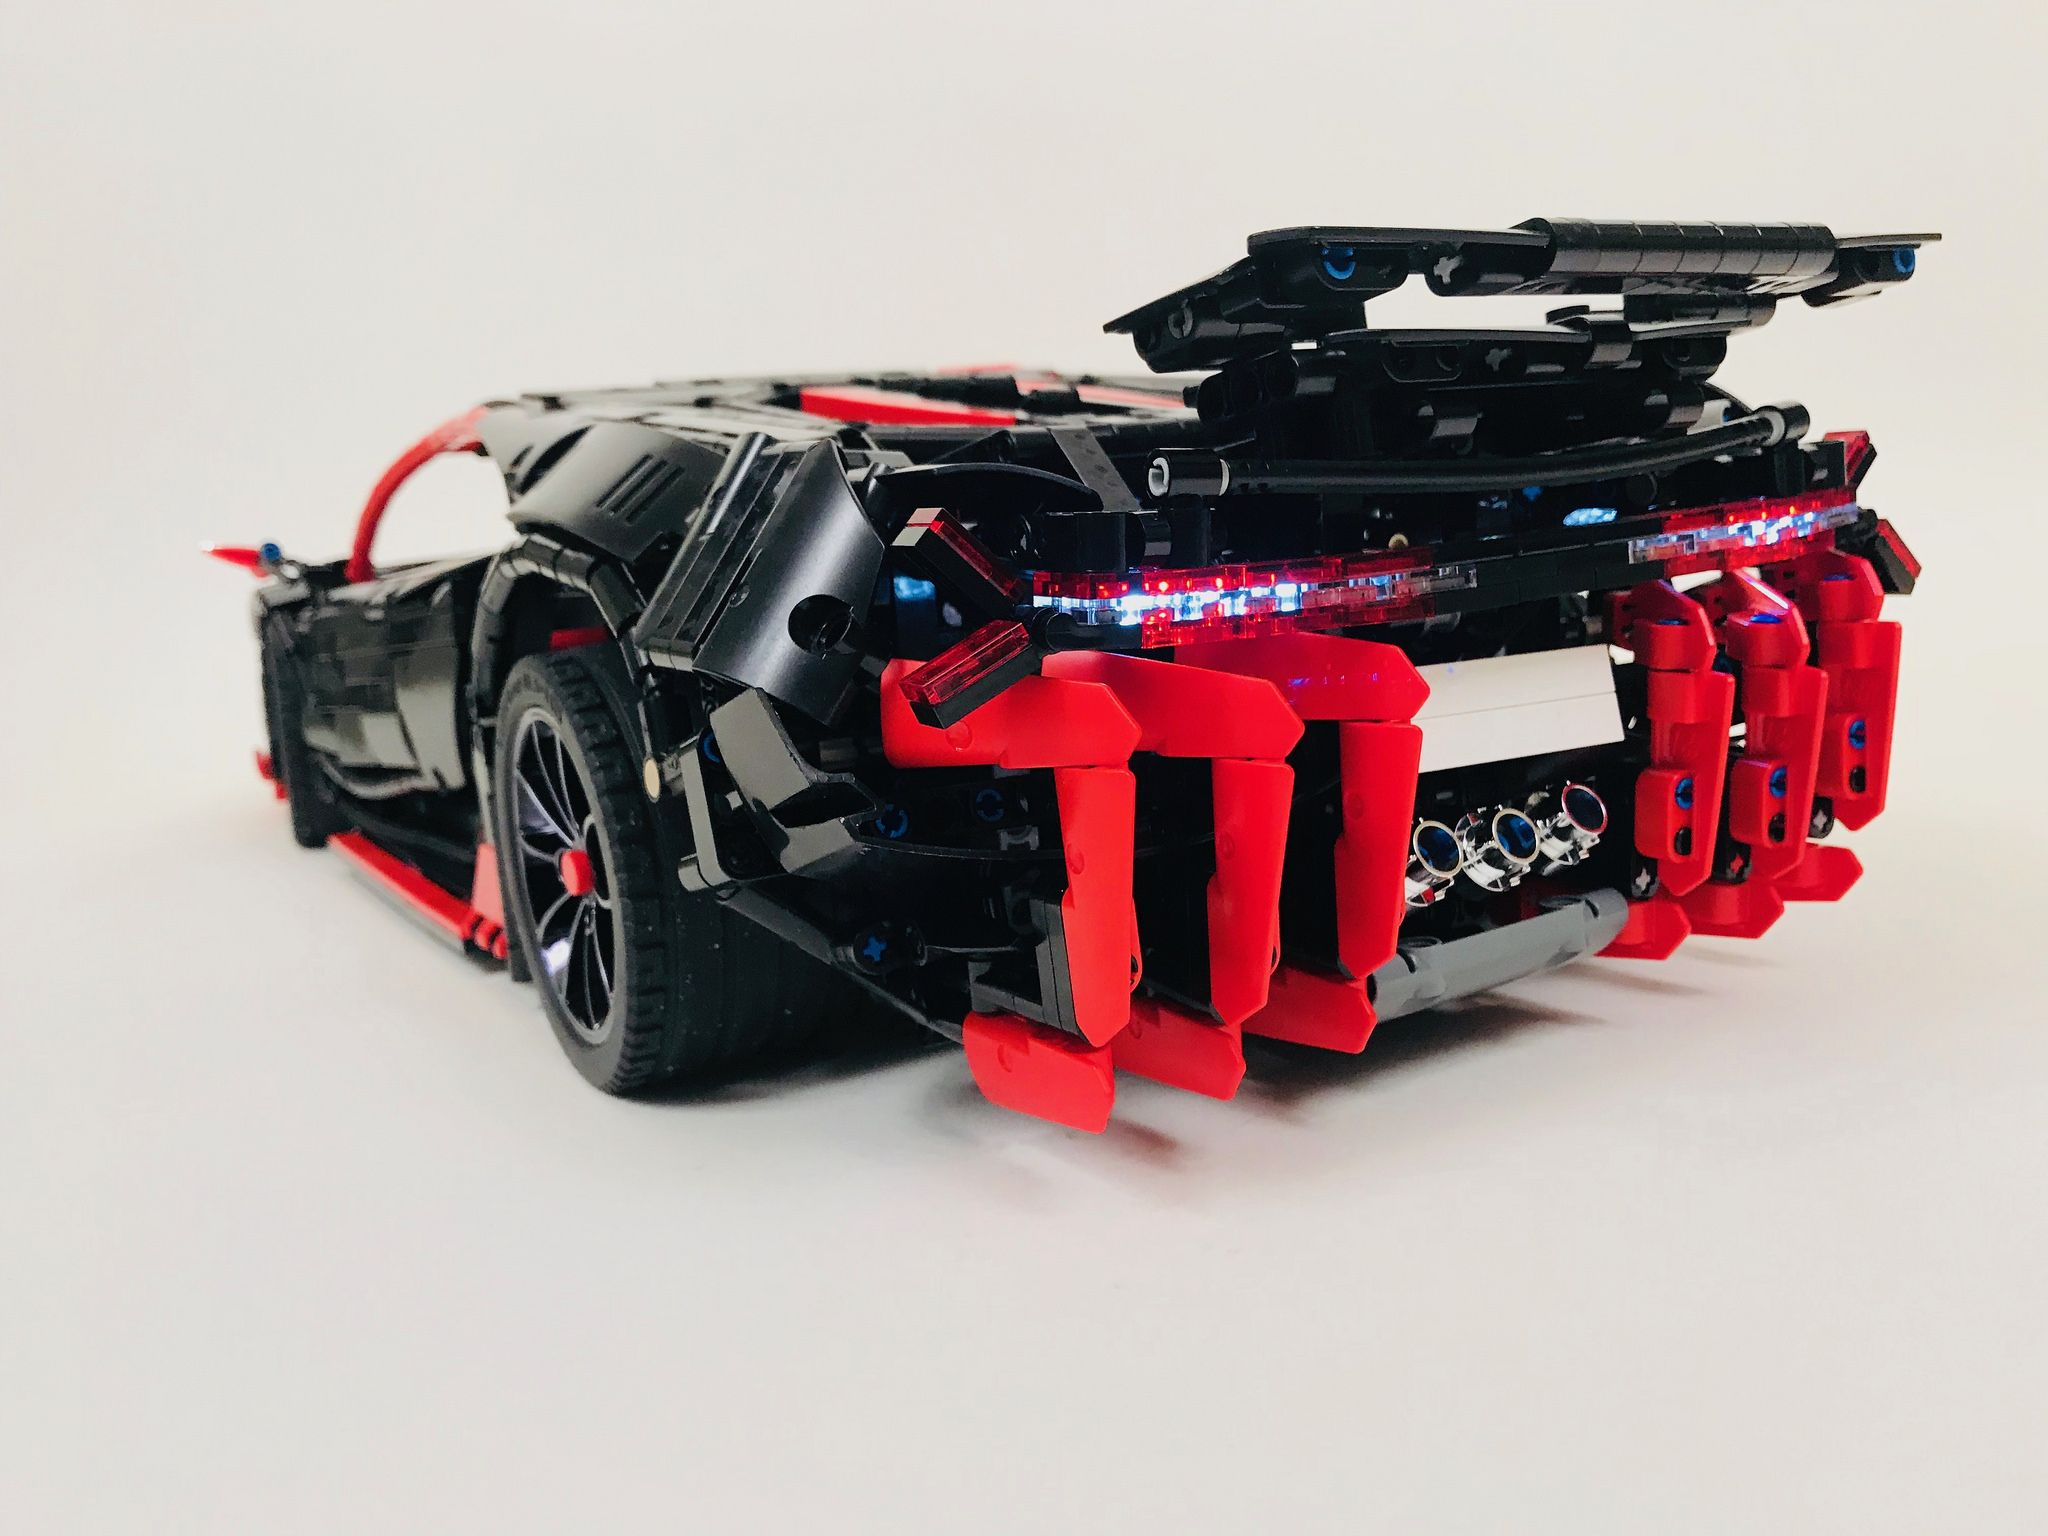 Lamborghini Centenario Lego Technic Lego Cars Lego Projects